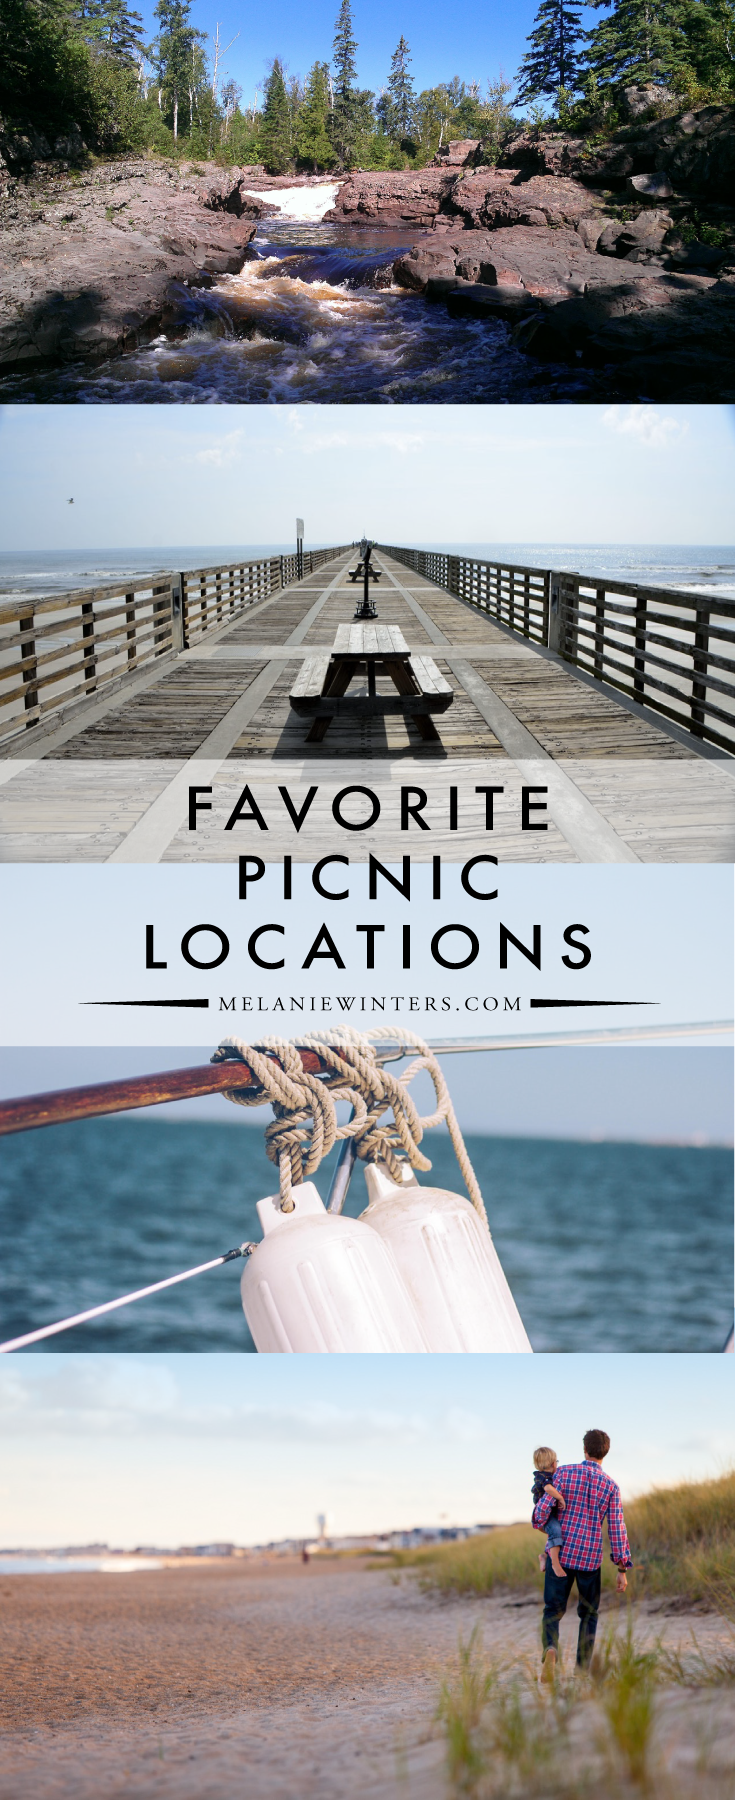 No matter where you're stationed, we've got some great picnic locations ready for you to discover!